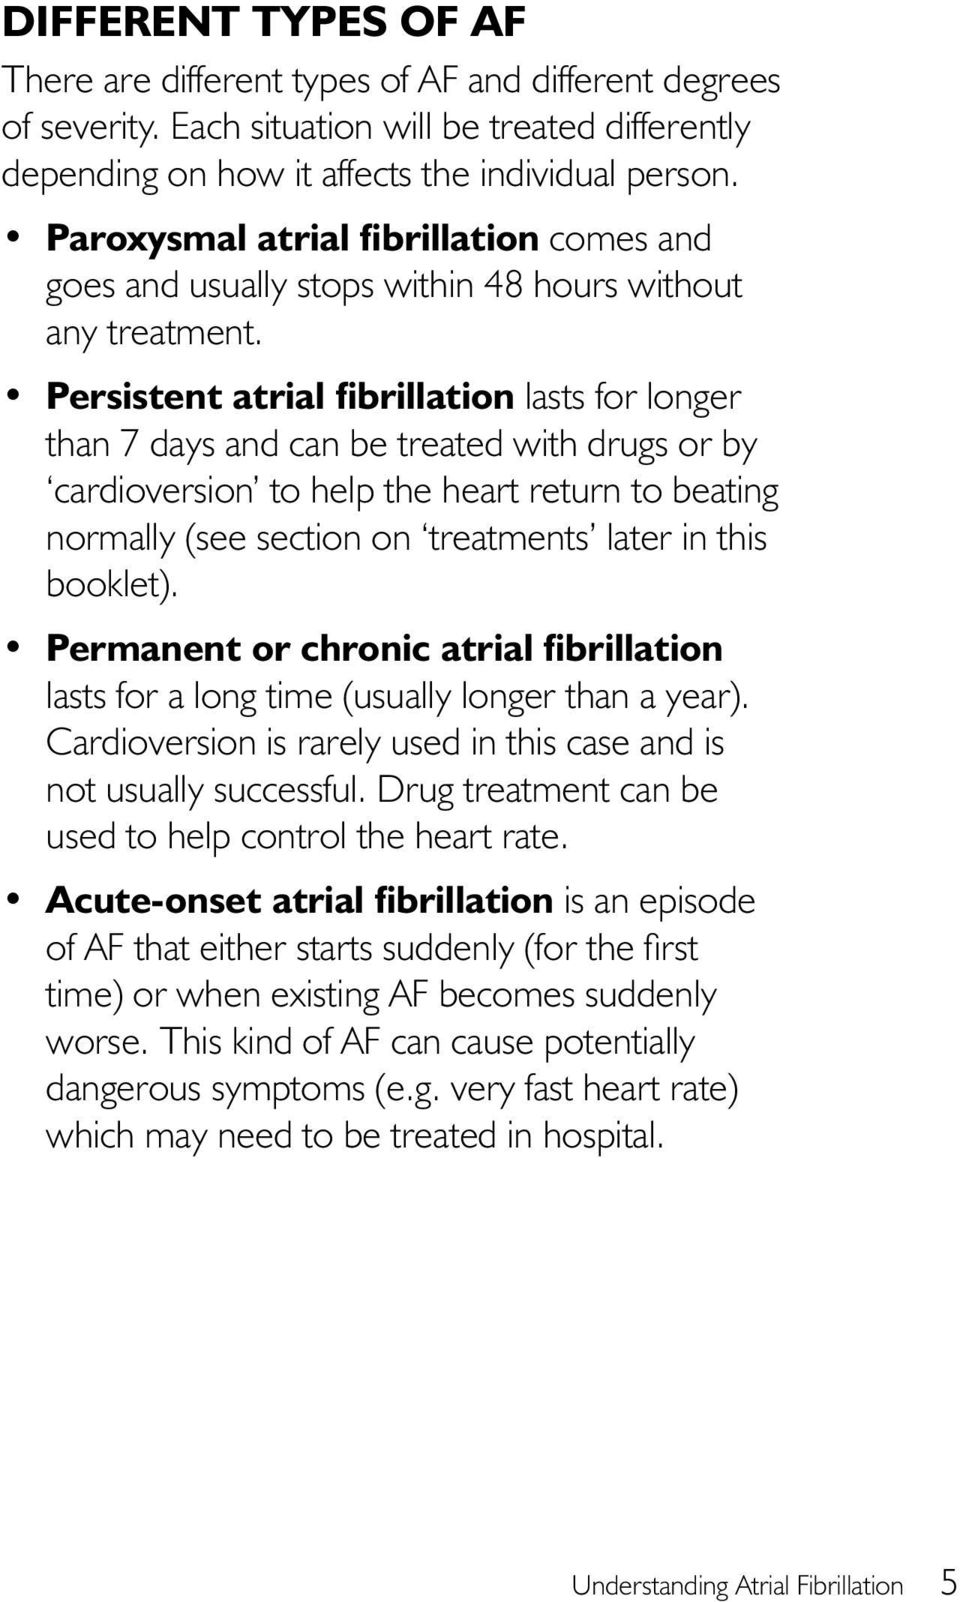 Persistent atrial fibrillation lasts for longer than 7 days and can be treated with drugs or by cardioversion to help the heart return to beating normally (see section on treatments later in this